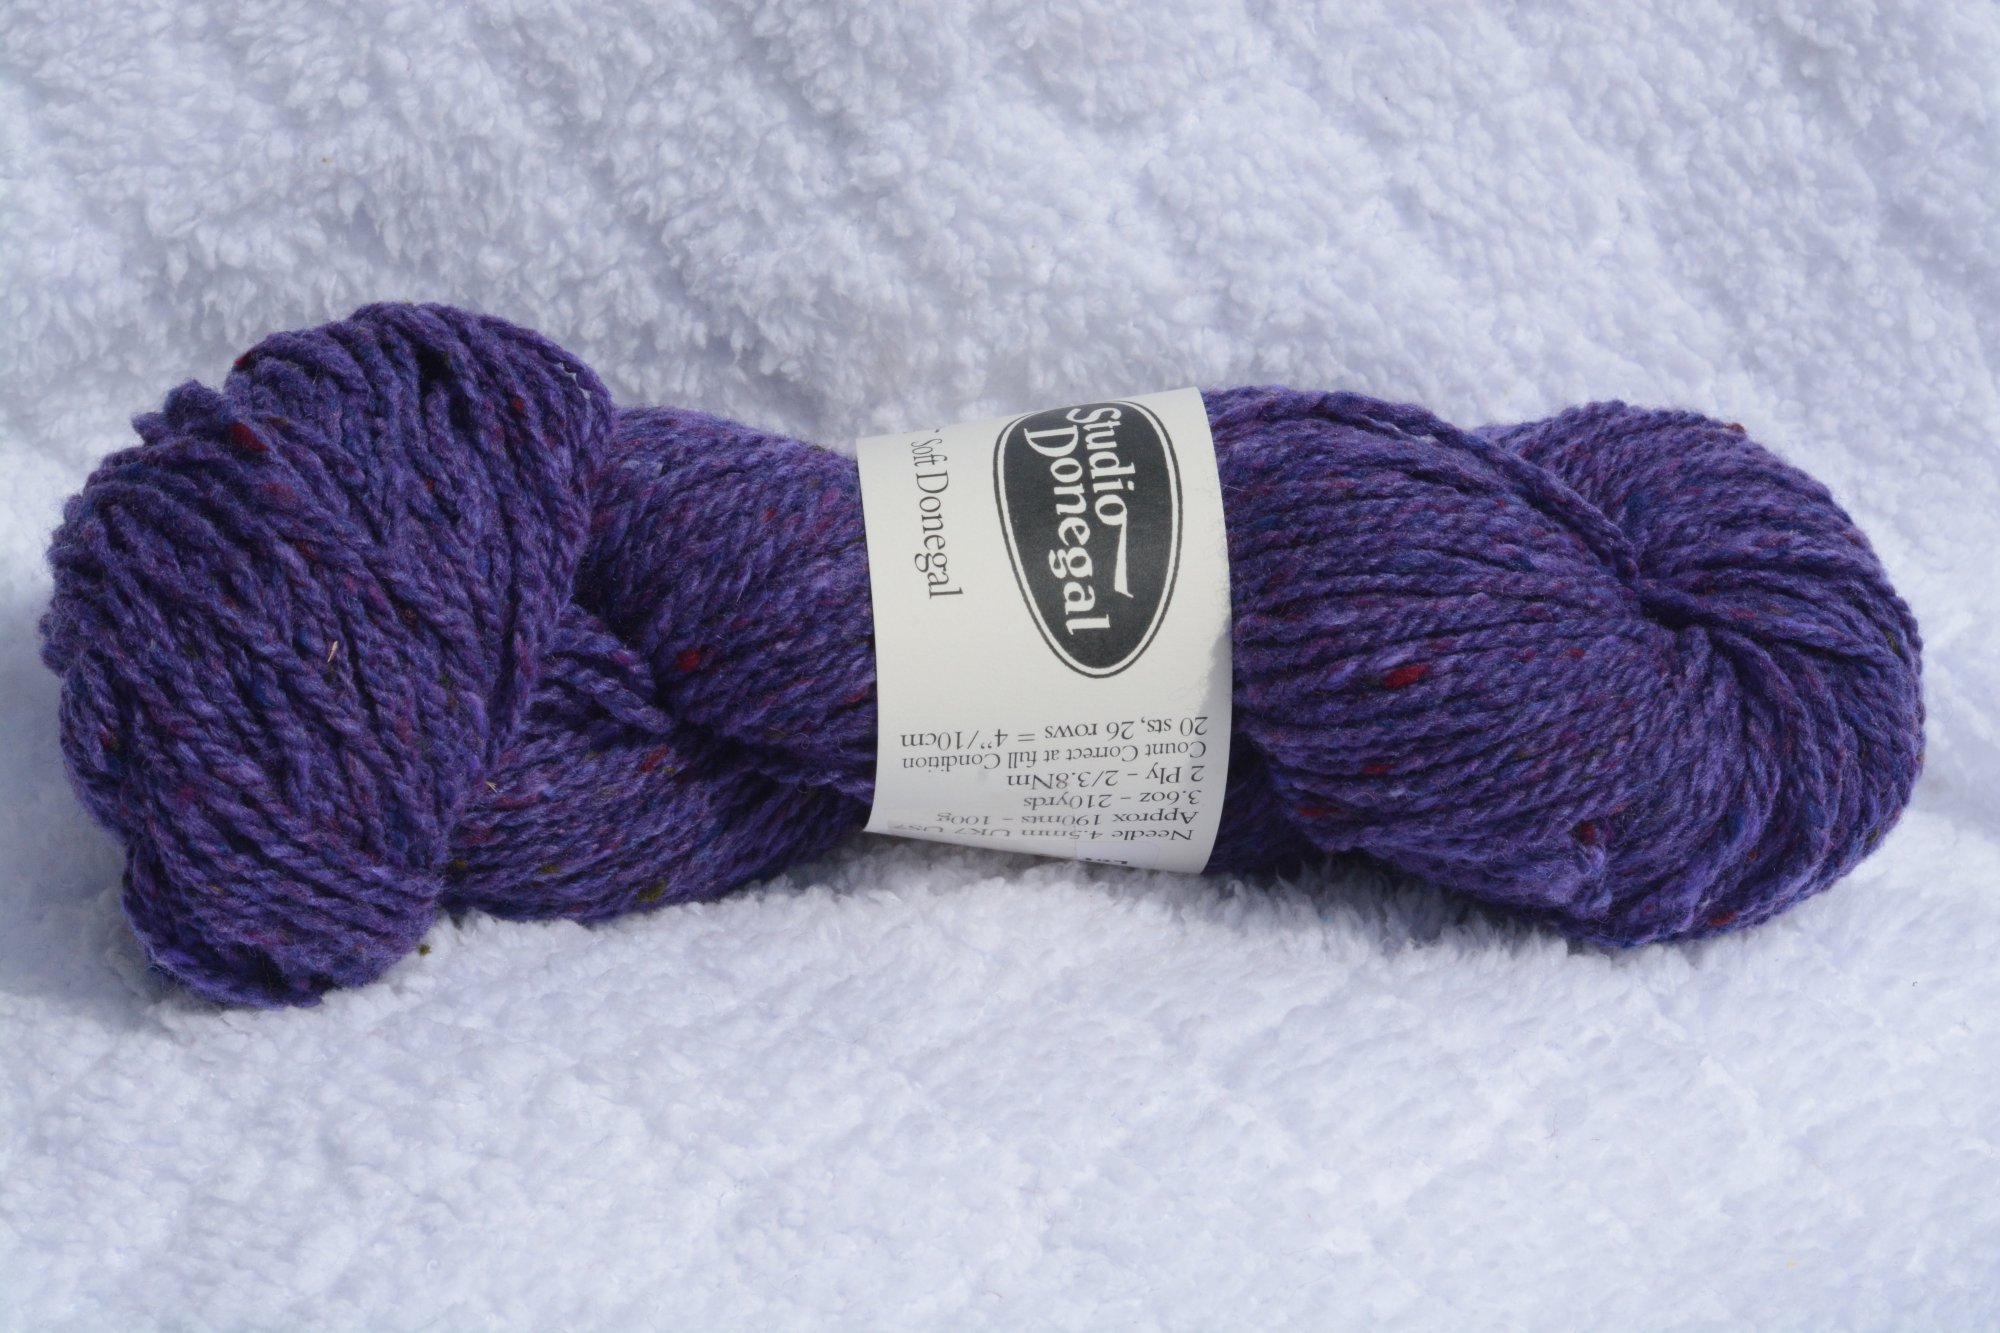 Soft Donegal - purple